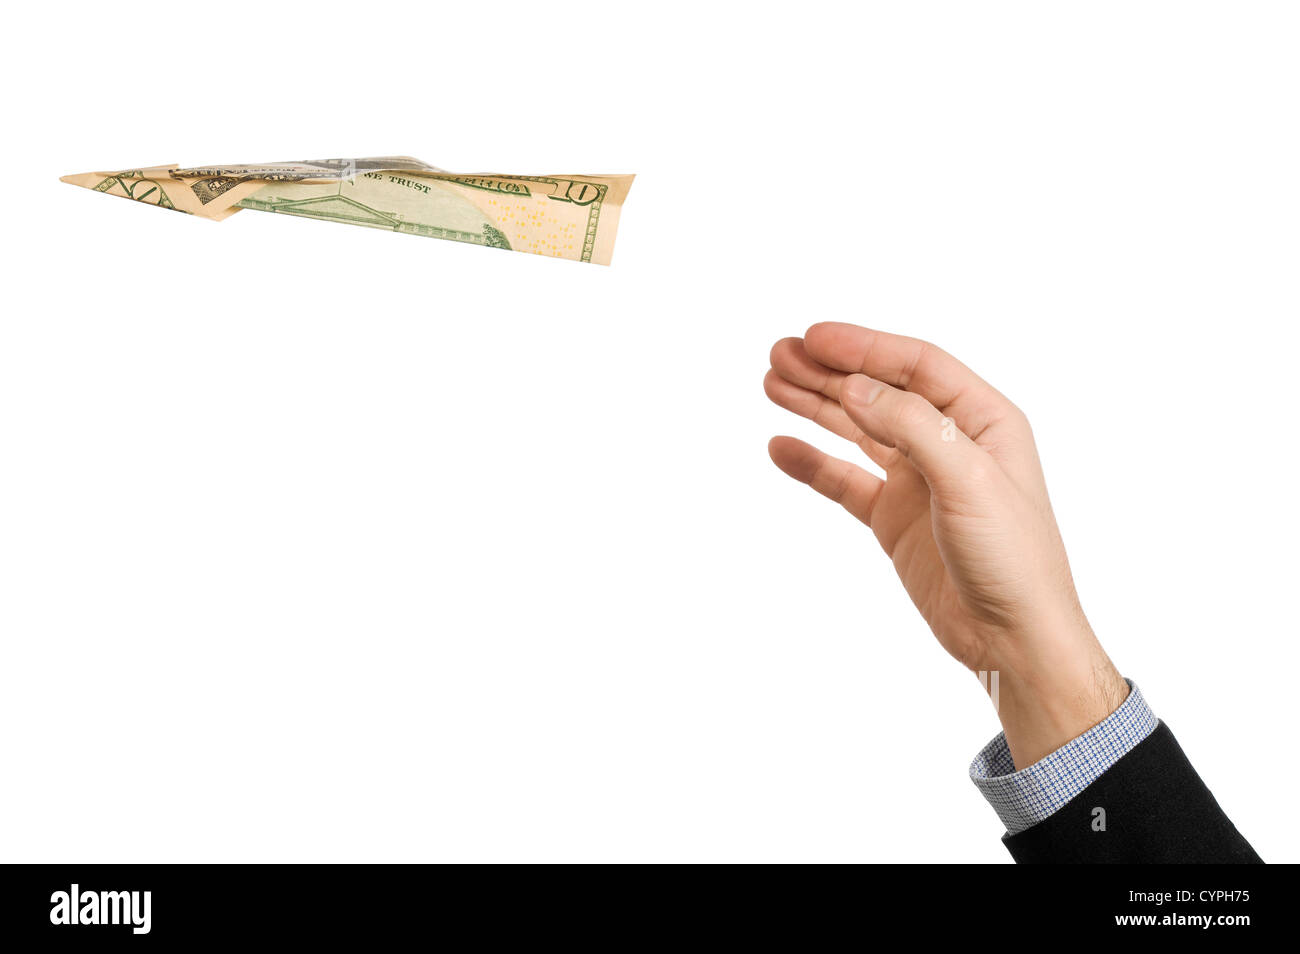 A man's hand throwing a paper plane made of a ten dollar bill. - Stock Image